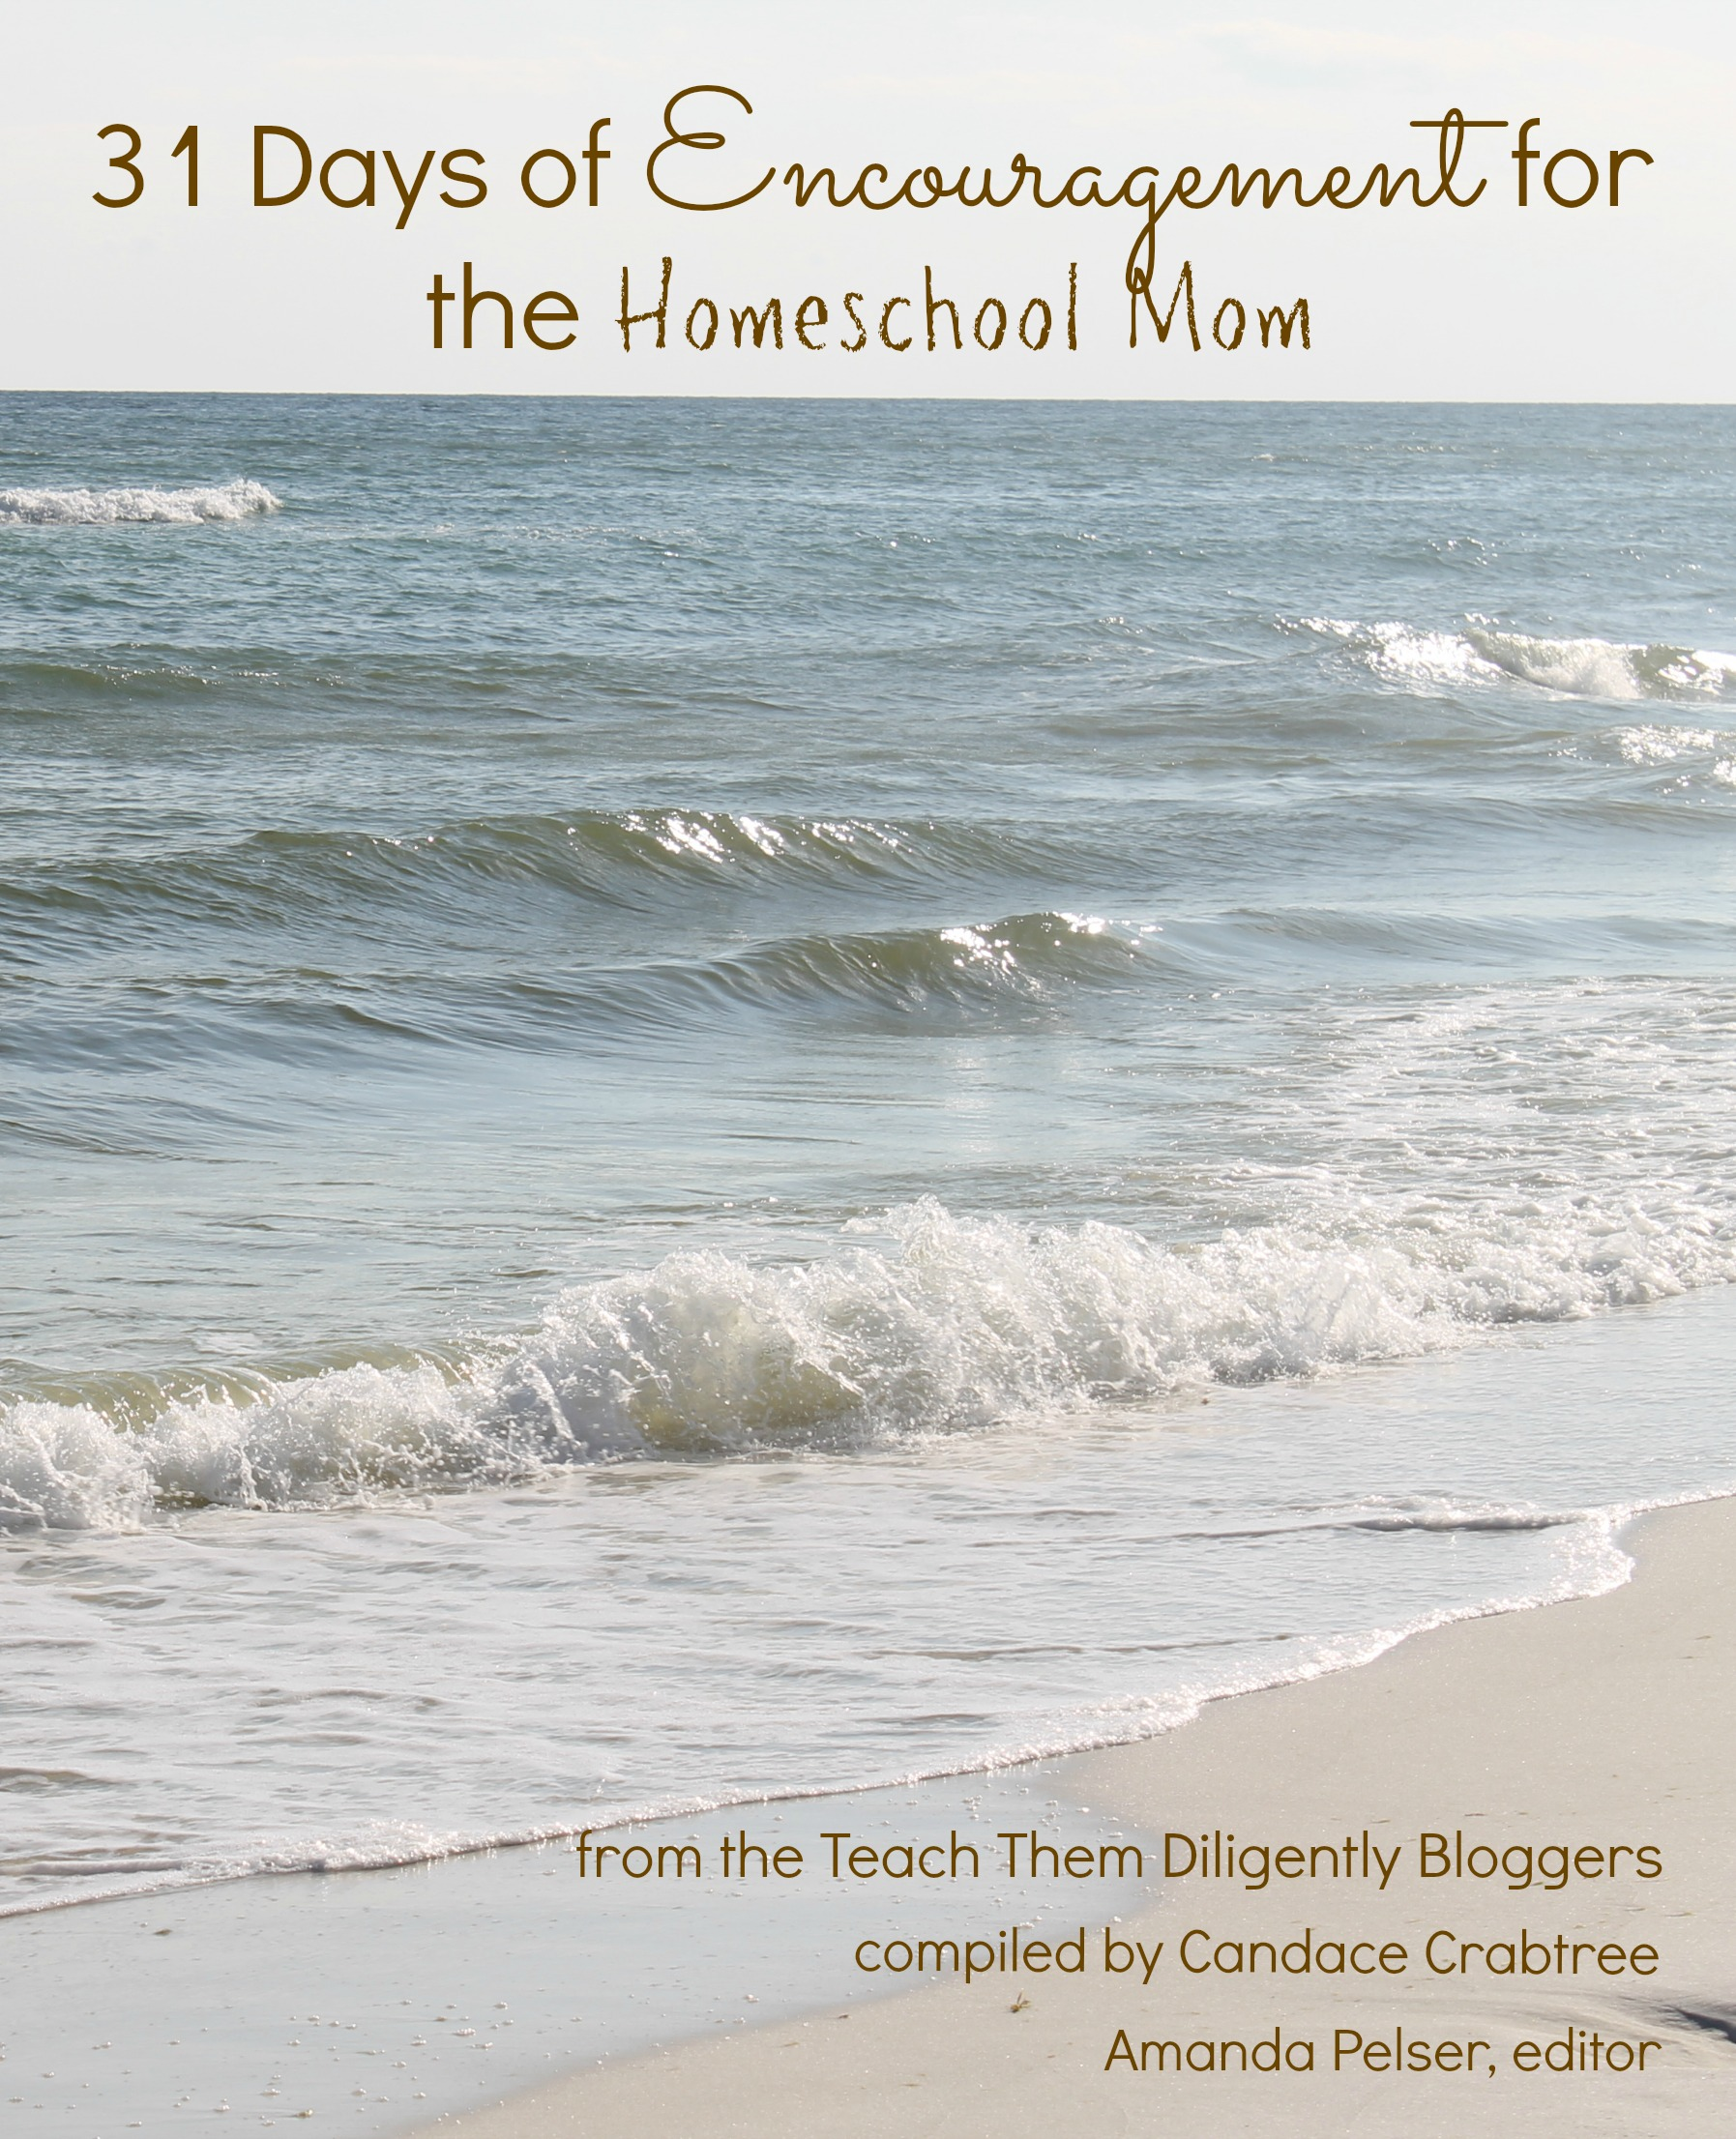 Receive 31 Days of Encouragement for Homeschool Moms FREE!